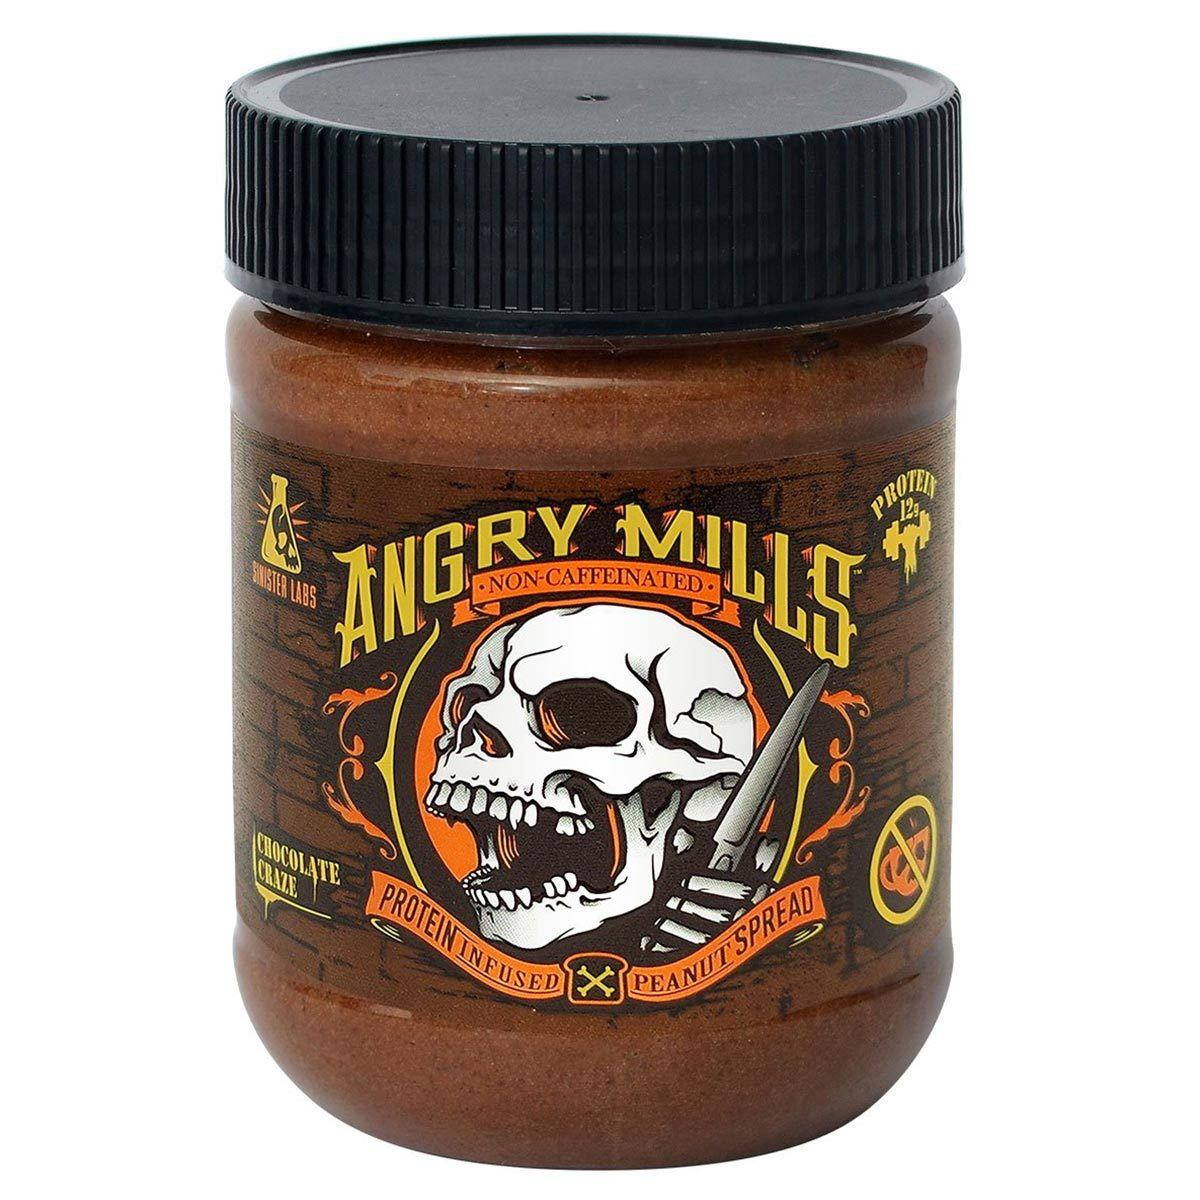 Angry Mills Caffeine Free Protein Infused Peanut Butter Spread Chocolate Craze Foods & Snacks Sinister Labs  (1059327541291)